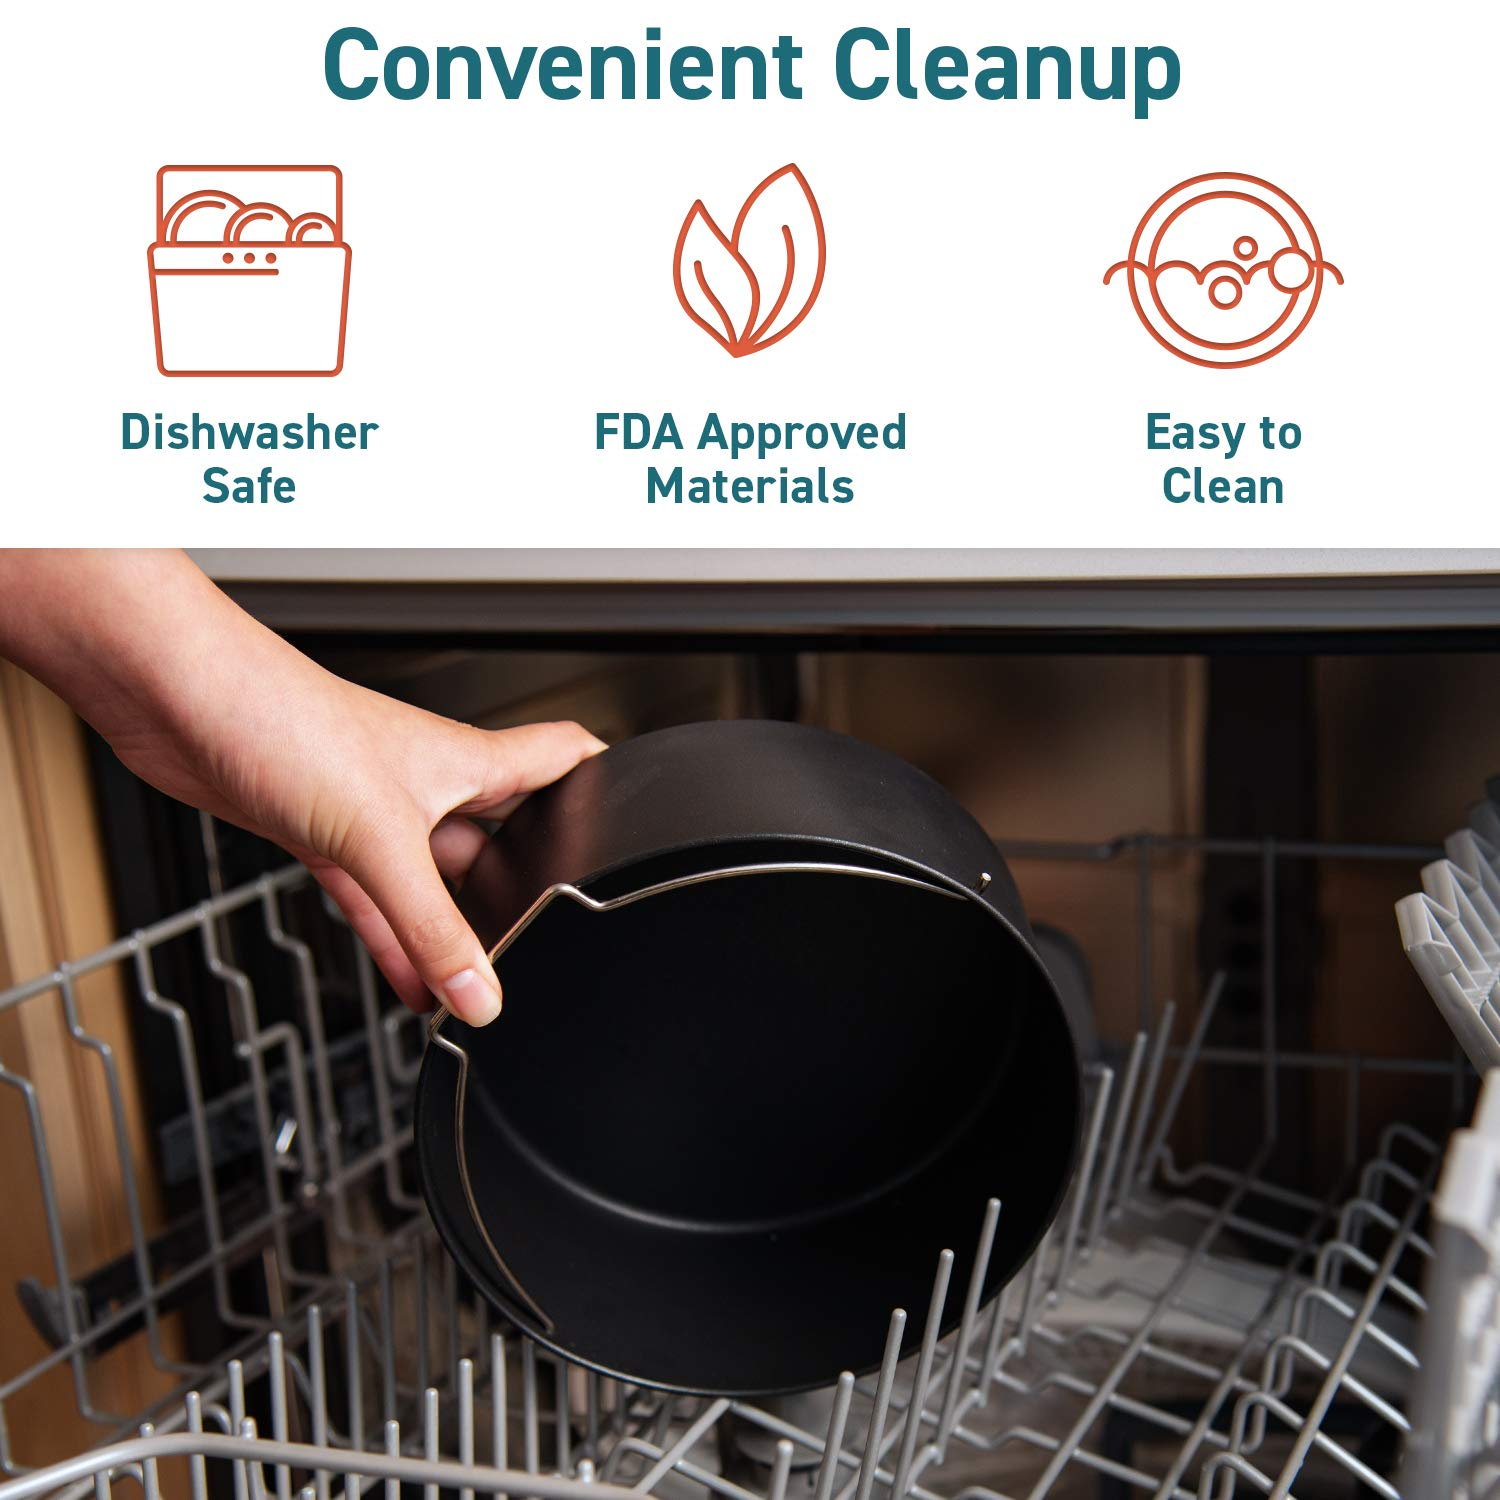 COSORI Air Fryer Accessories XL (C158-6AC), Set of 6 Fit all 5.3Qt, 5.8Qt, 6Qt Air Fryer, FDA Compliant, BPA Free, Dishwasher Safe, Nonstick Coating, 2-Year Warranty by COSORI (Image #2)